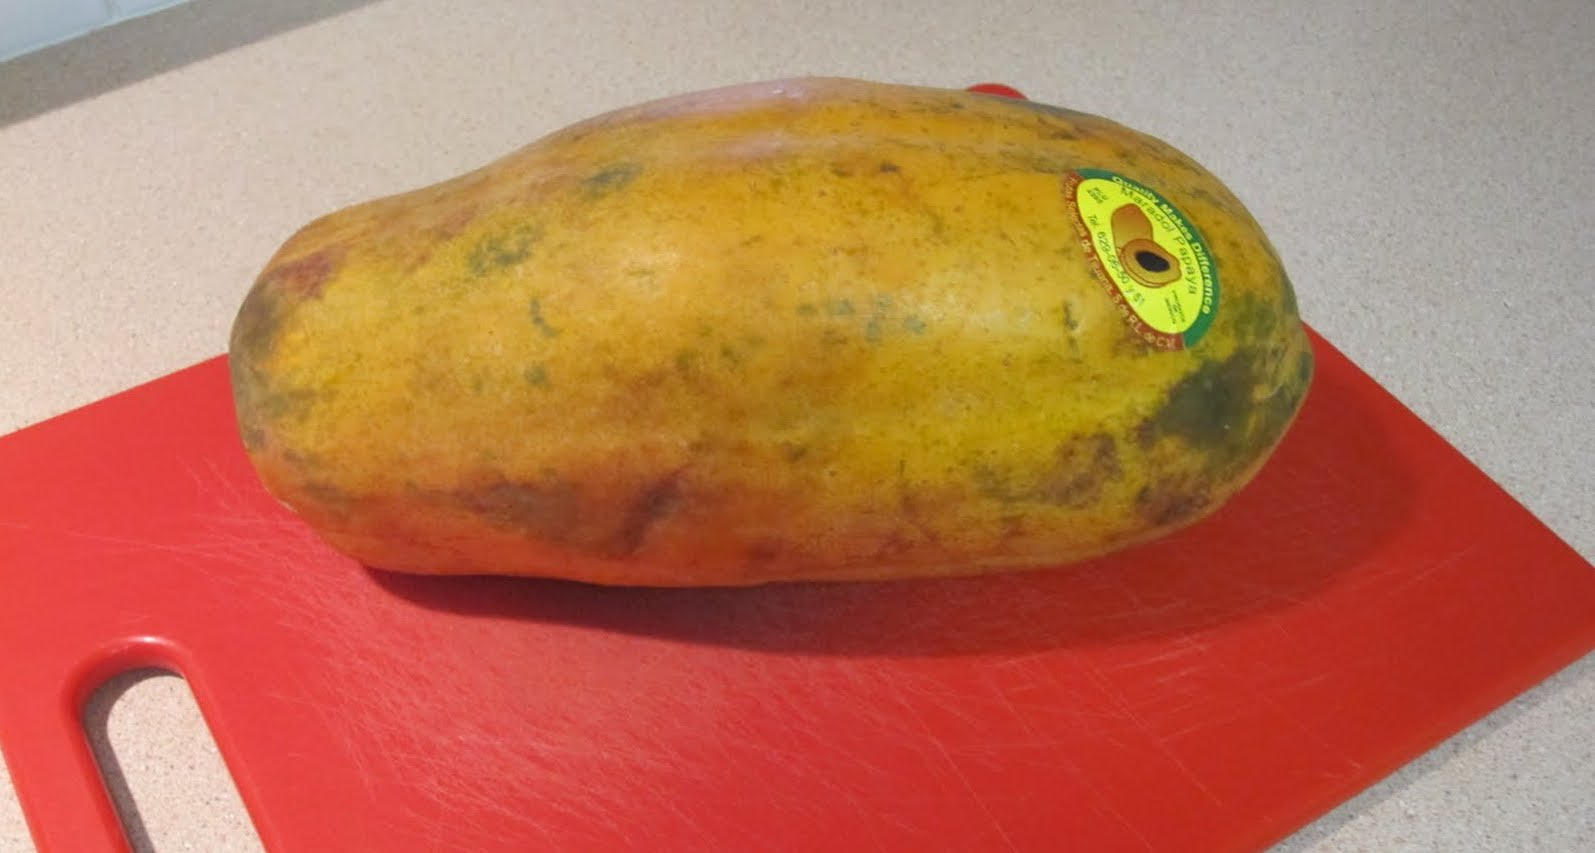 Papaya-Induced Salmonella Outbreak Increases to 109 Victims